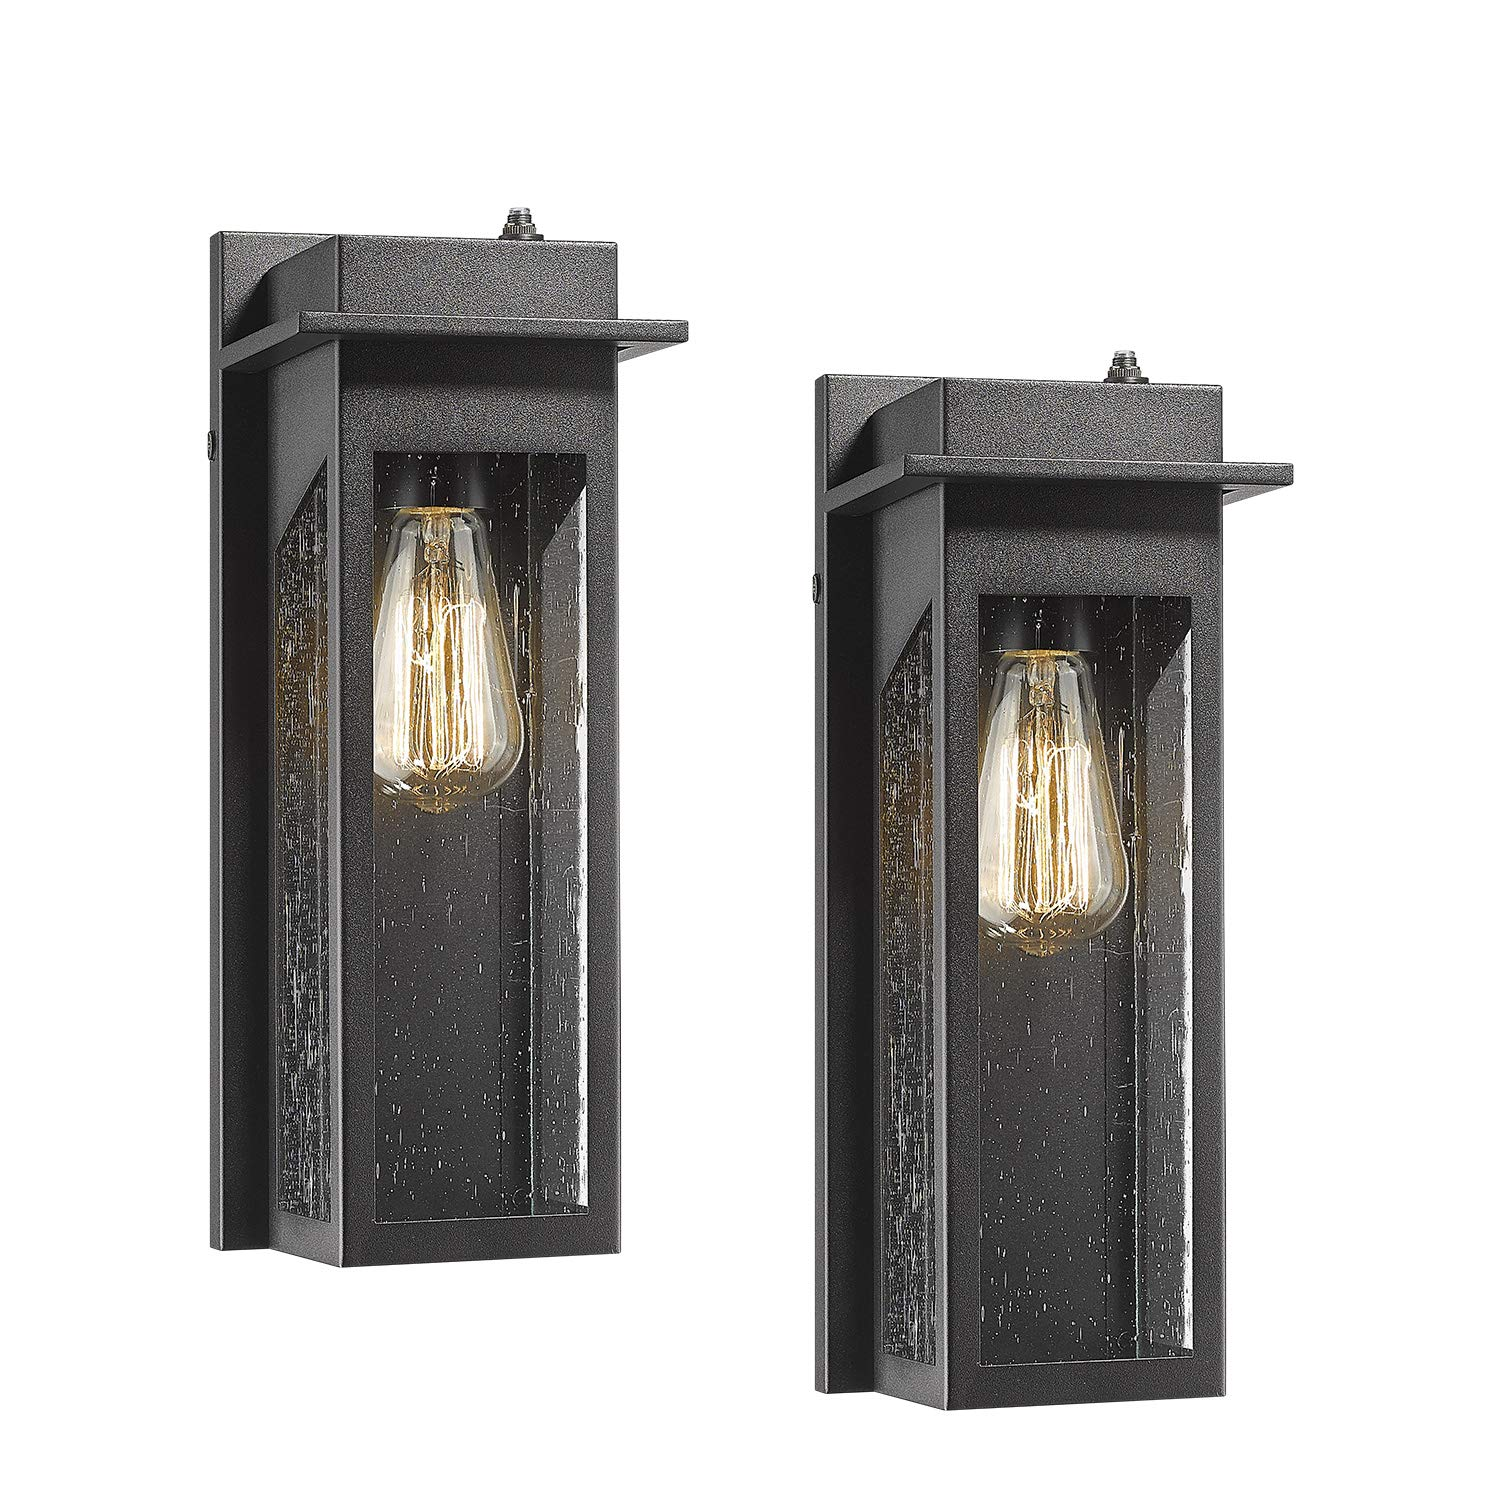 CALDION Dusk to Dawn Sensor Outdoor Wall Lanterns 2 Pack, Exterior Wall Light Fixture in Black Finish with Seeded Glass Shade, Wall Mount Sconce for Garage, Doorway, Porch, 2478-1WL-2PK